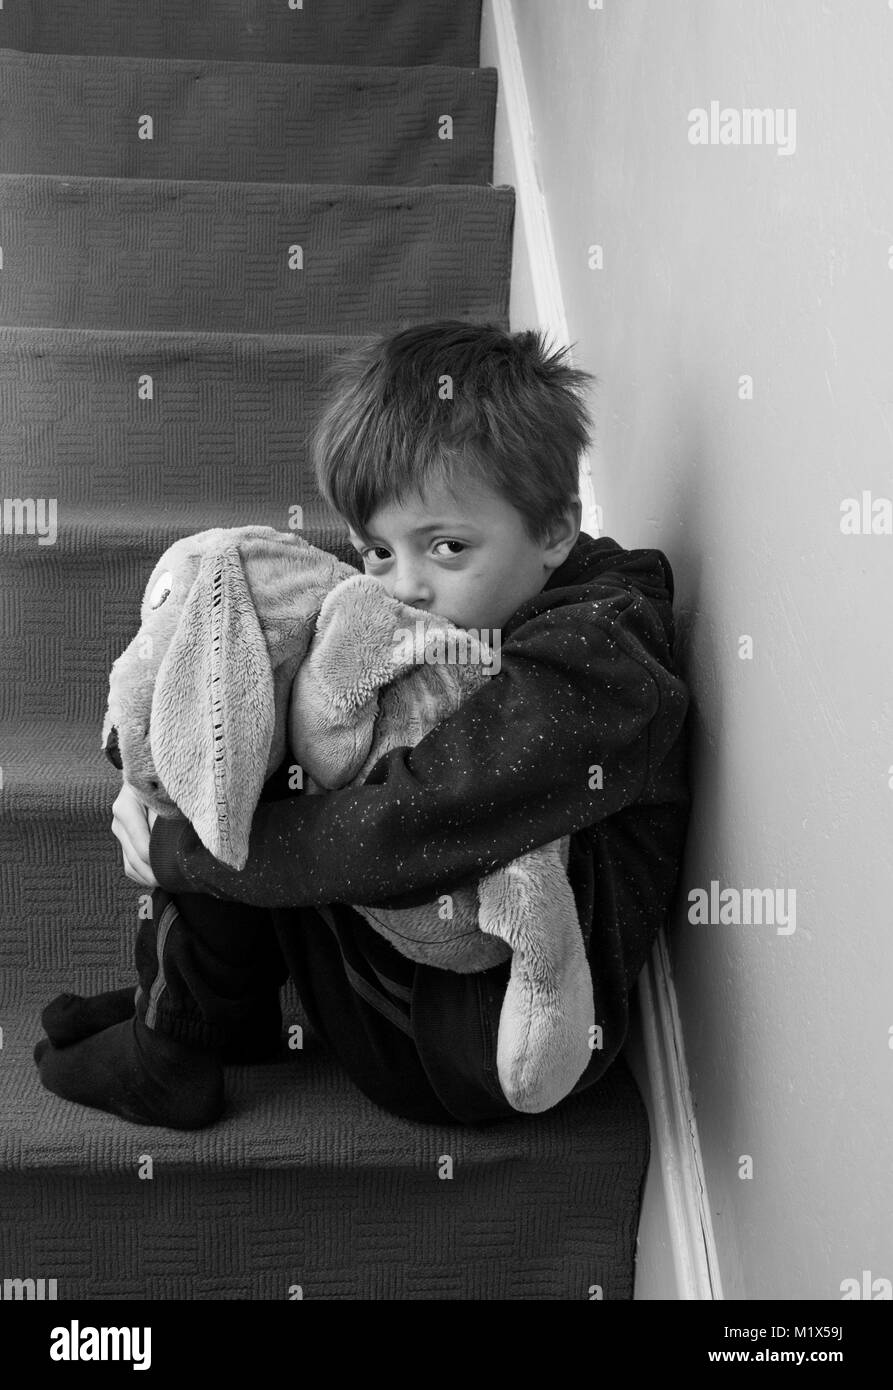 Lonely child feeling abandoned sitting on the stairs stock image